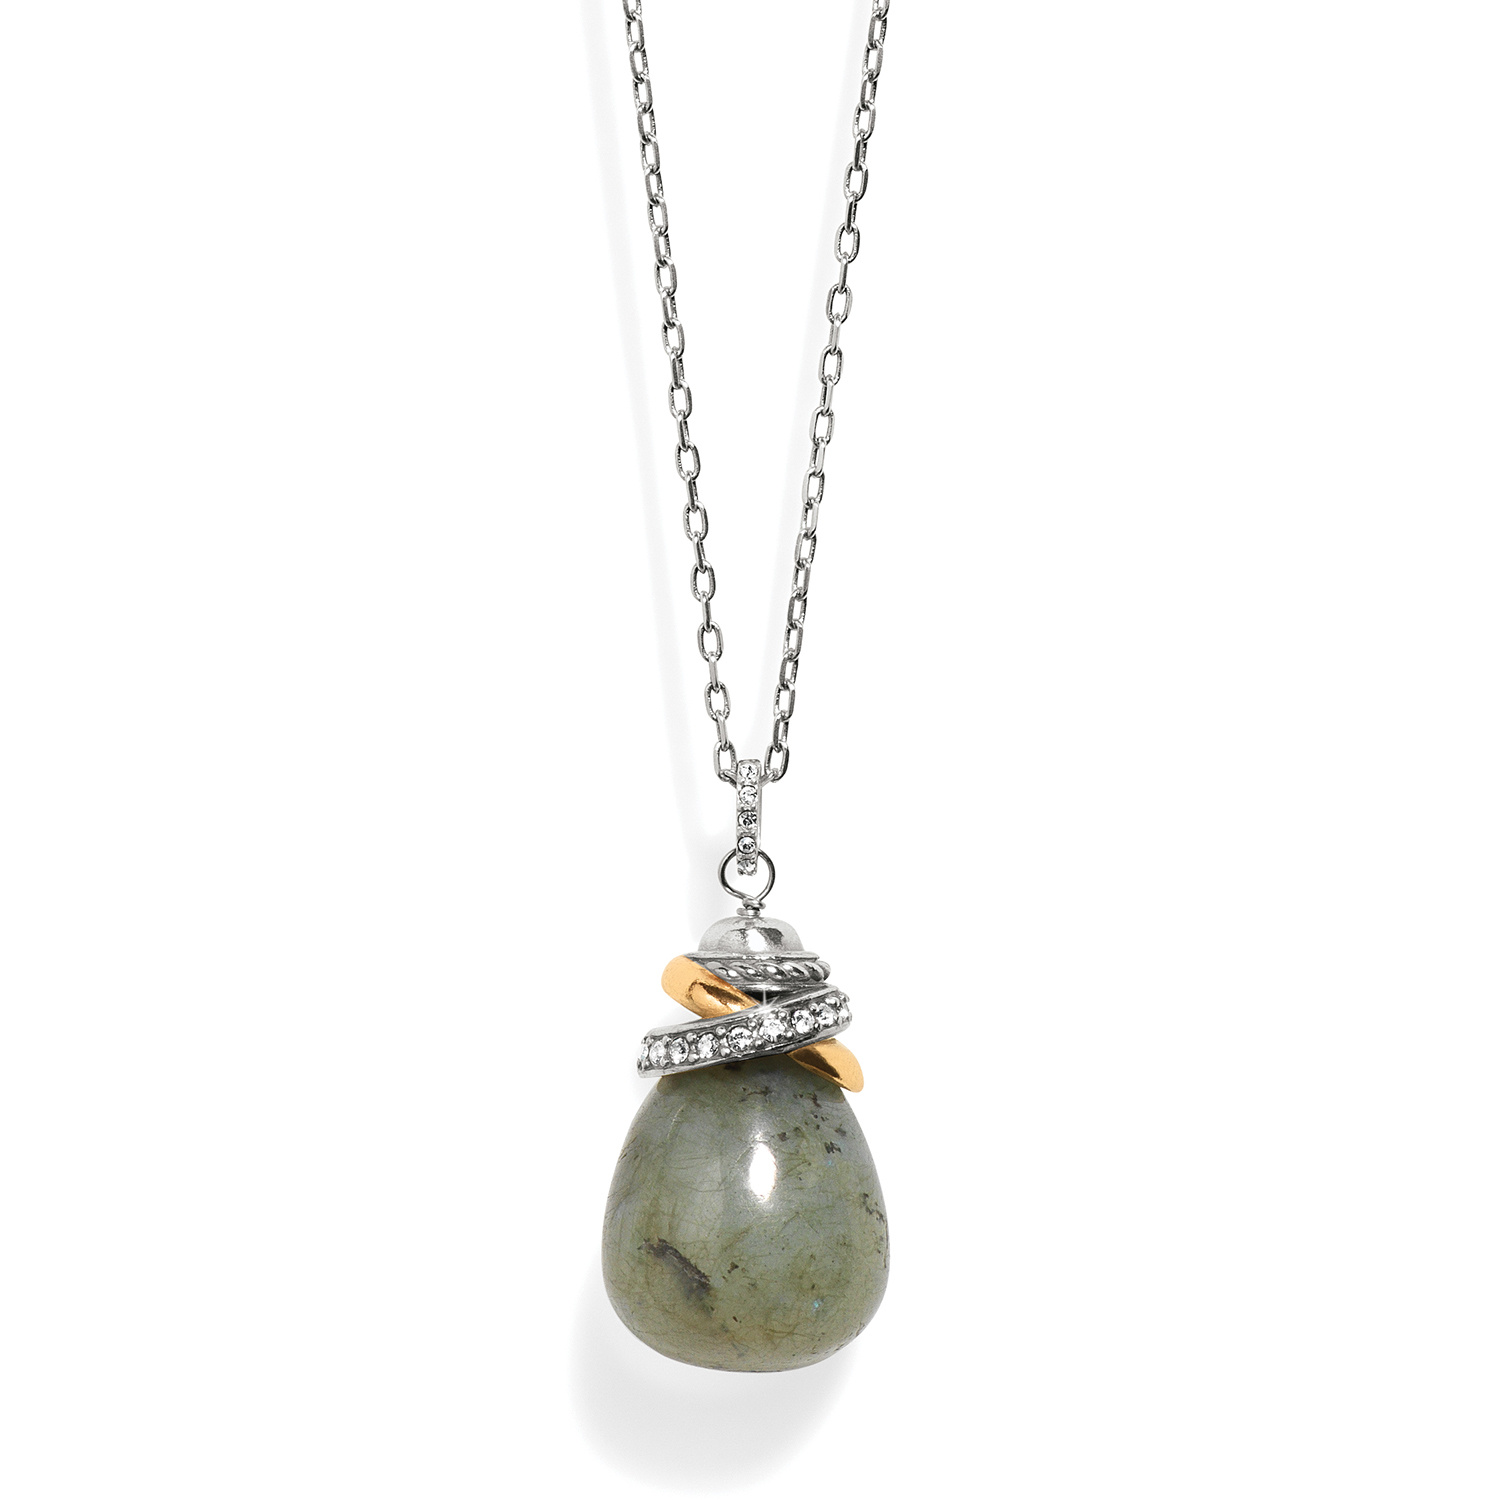 img pendant pleasentview sparkesdesign labradorite products necklace